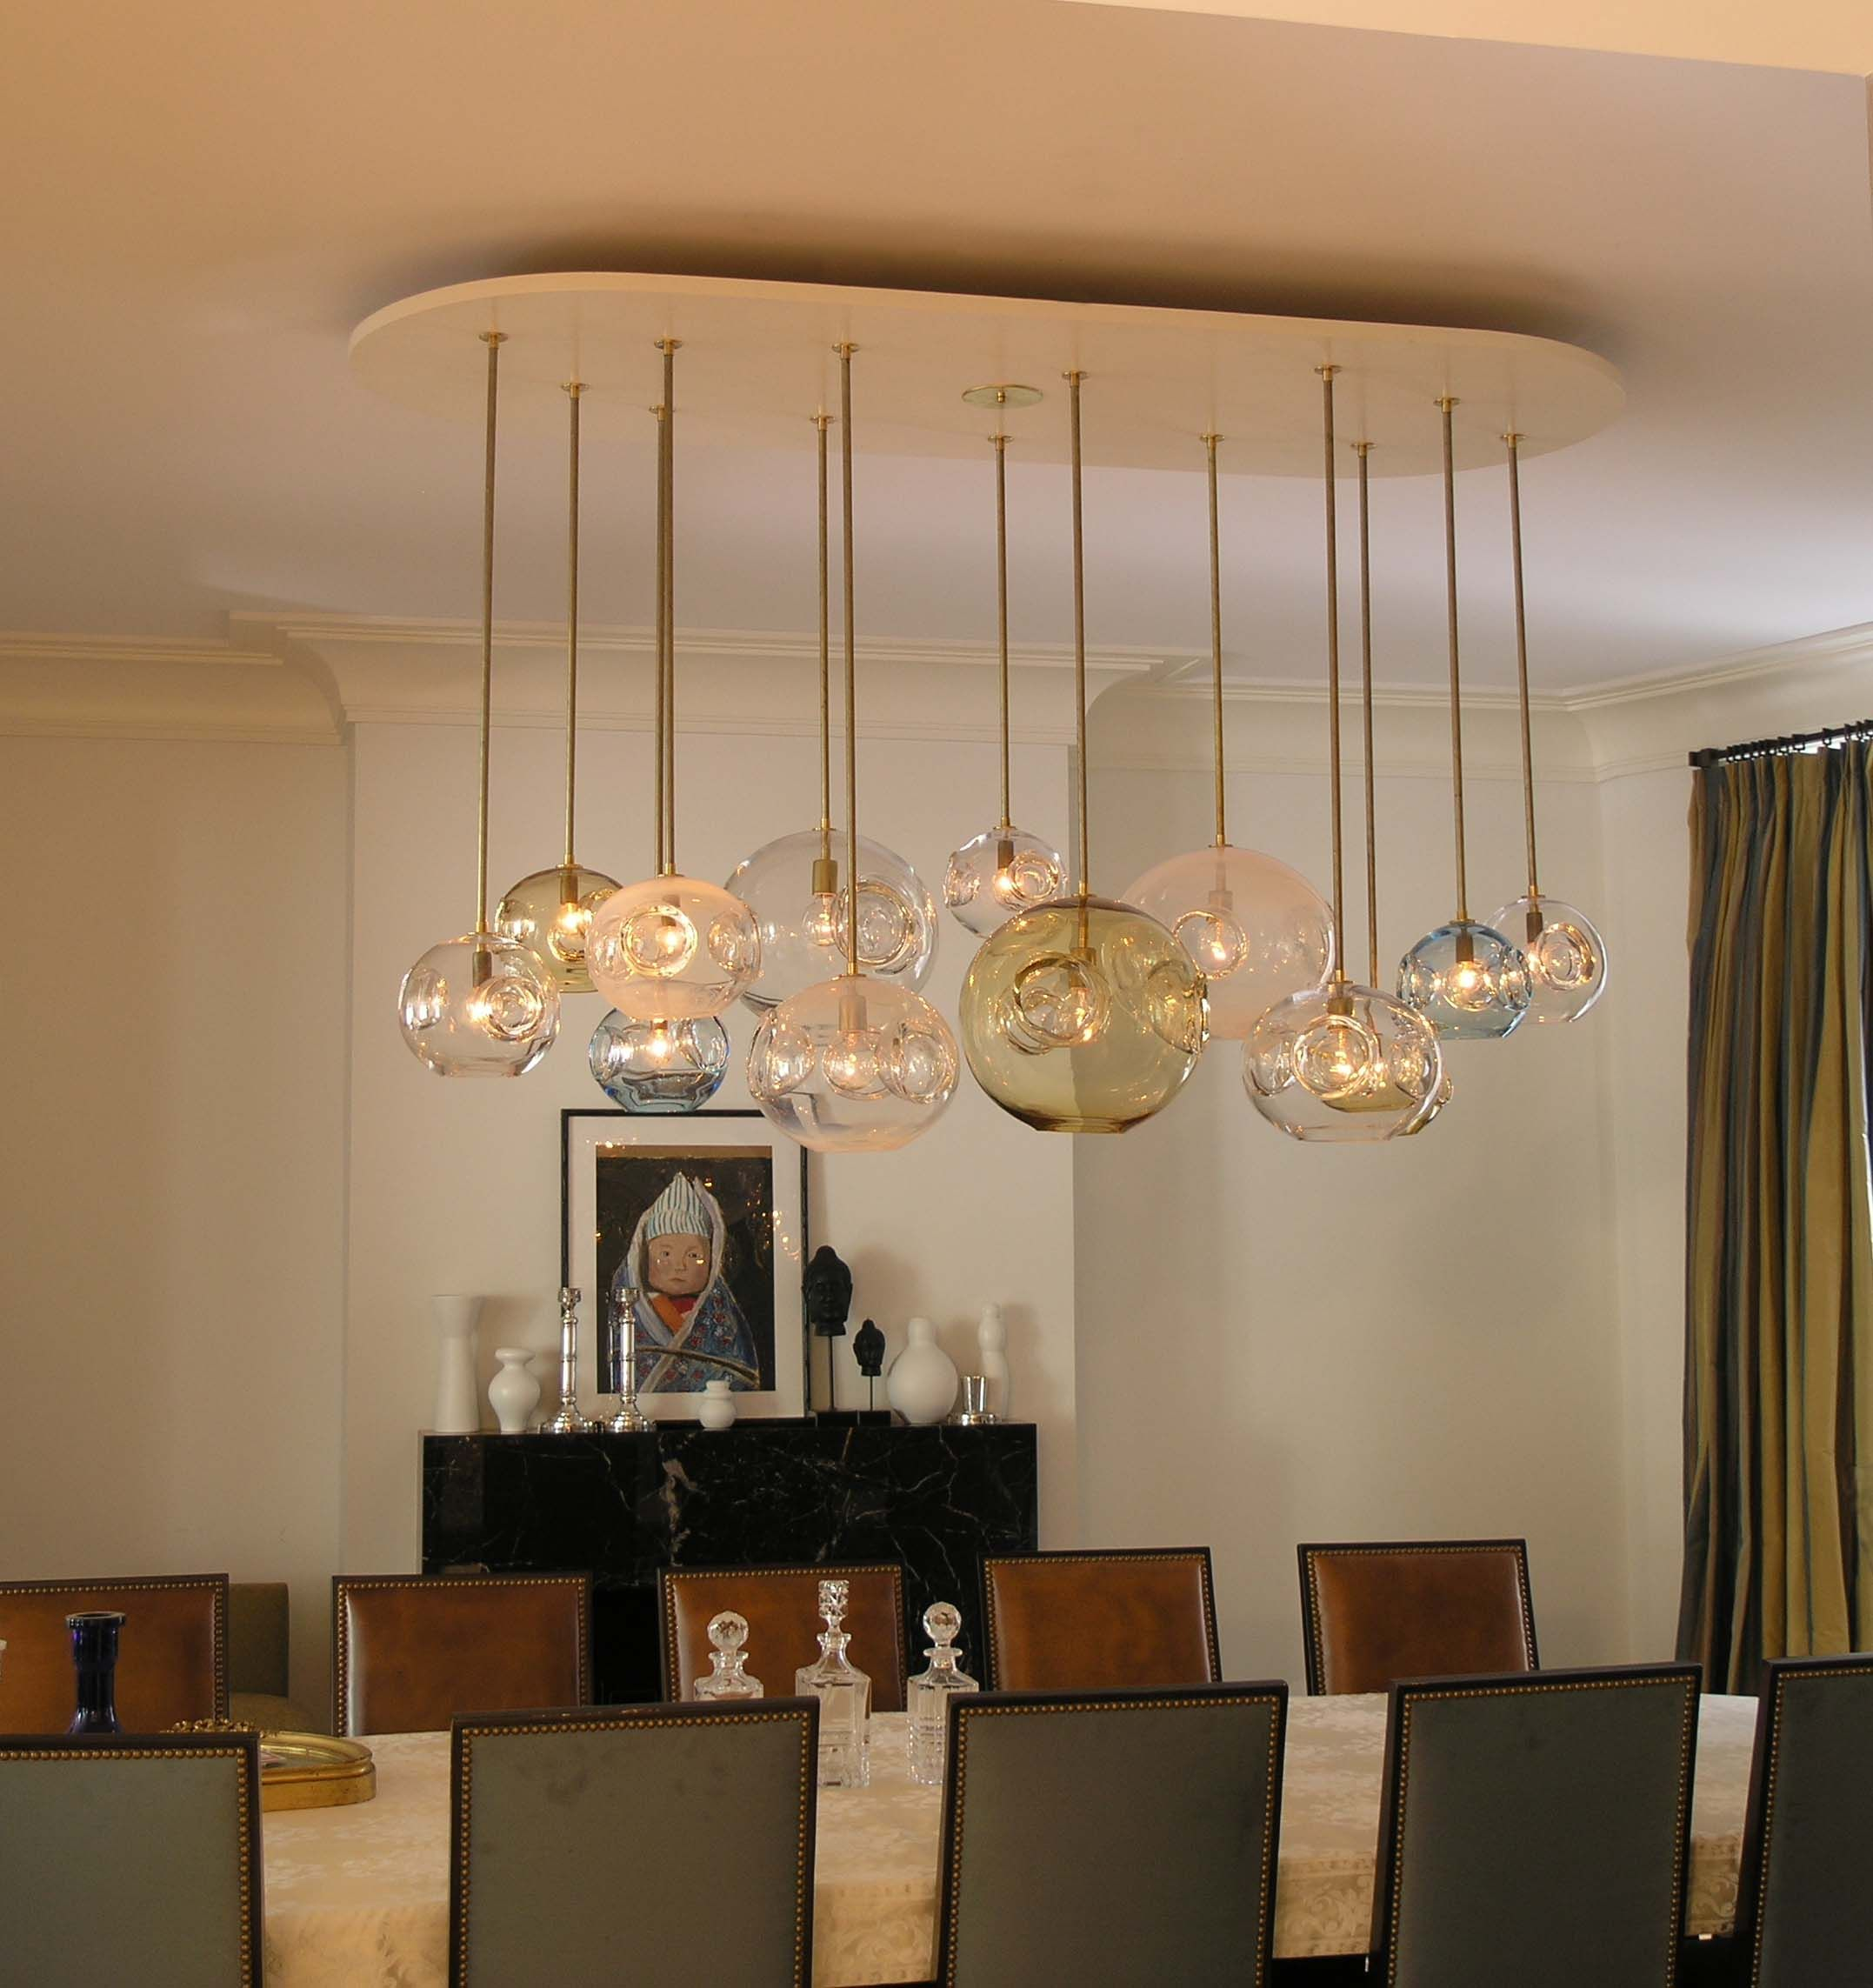 Creative Dining Room Lighting With Aqua ChandelierCreative Dining Room Lighting With Aqua Chandelier   Dining table  . Hanging Light Fixtures For Dining Rooms. Home Design Ideas